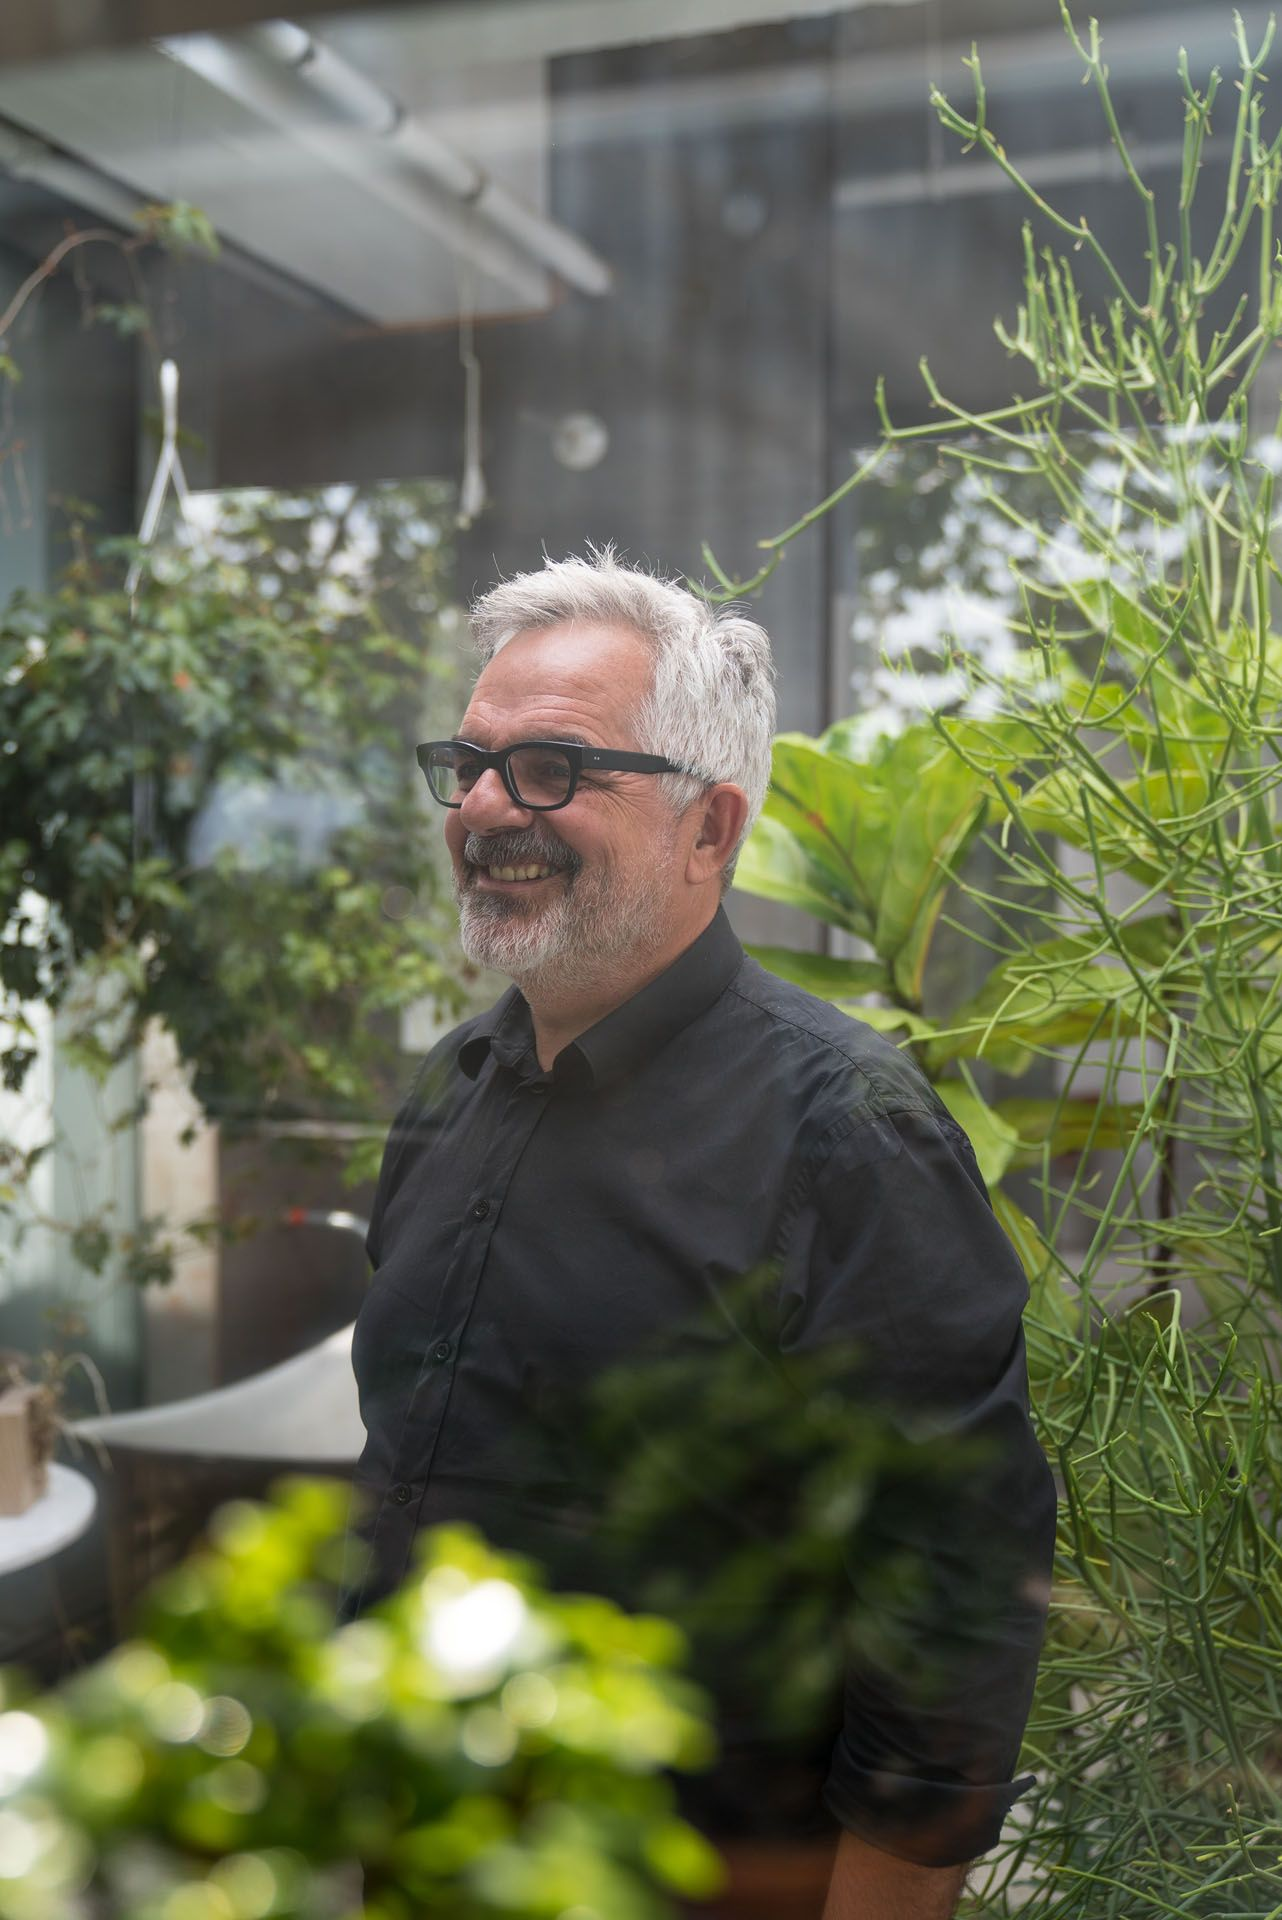 white haired man wearing glasses and black shirt posing inside greenhouse among plants by Bruno Florin for mile ex mille vie